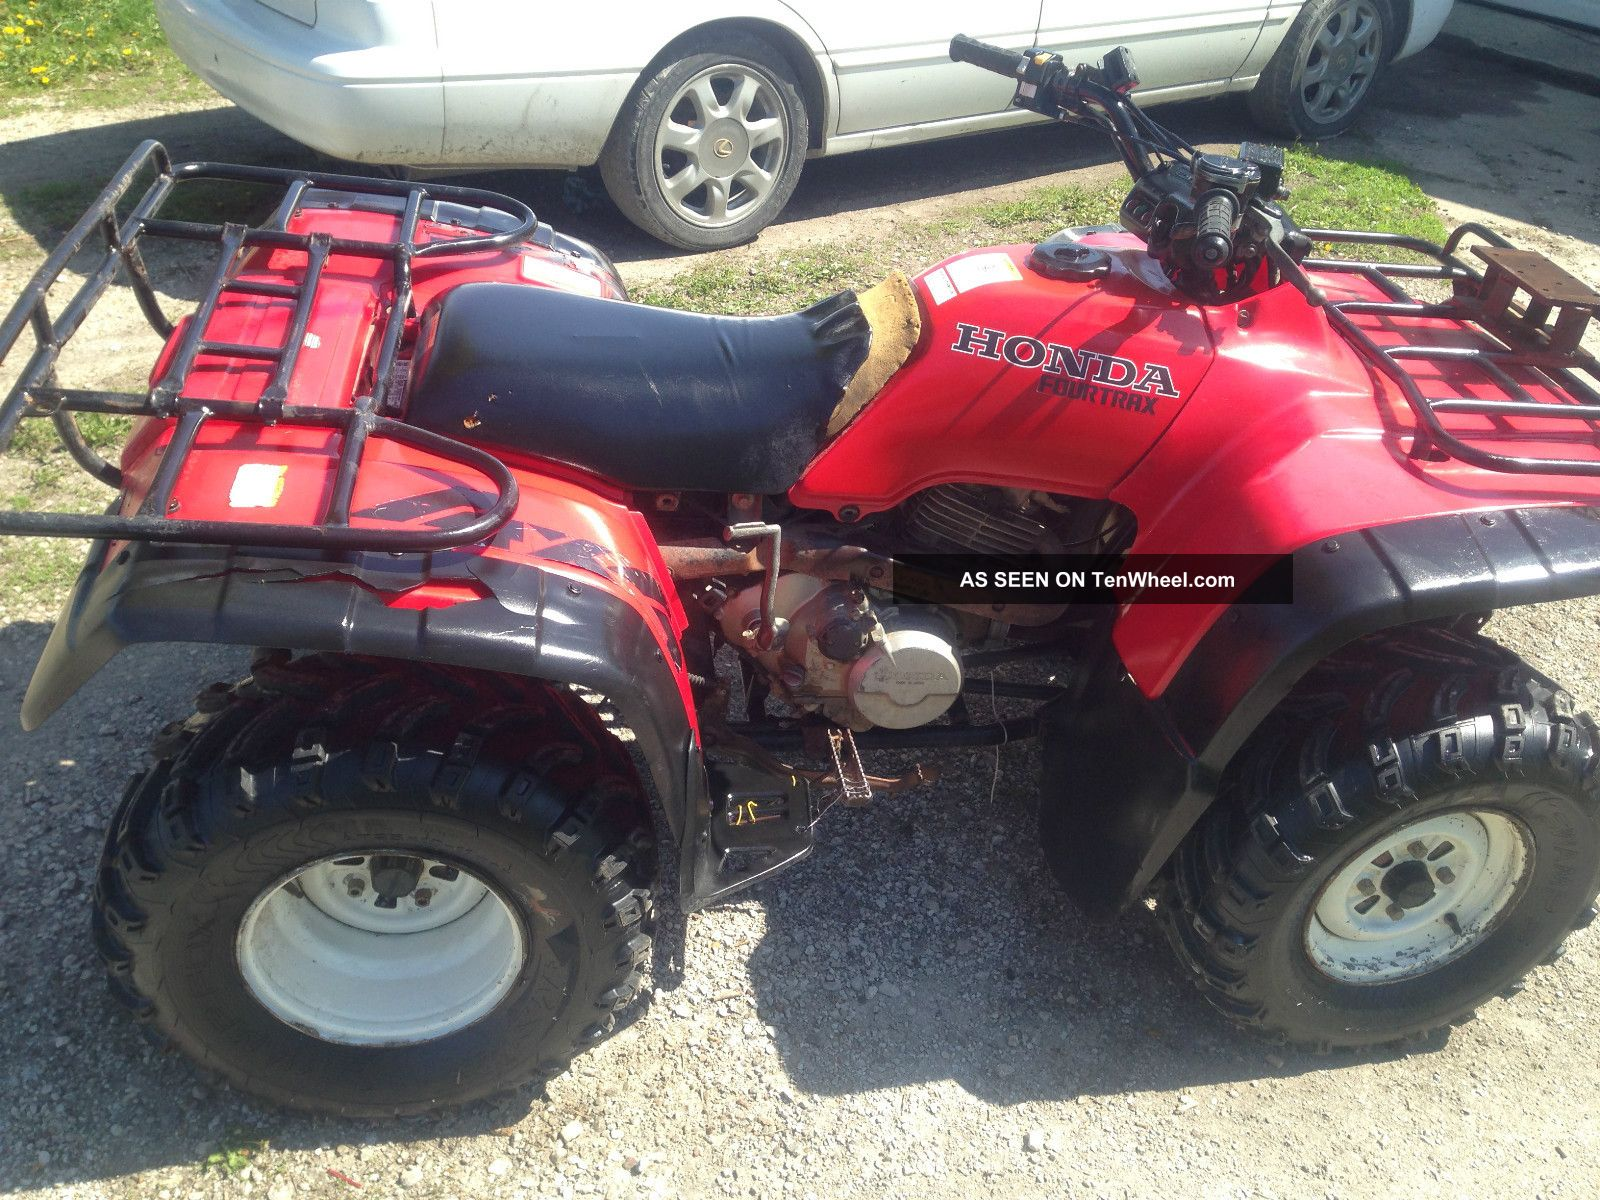 2015 En Xr 500 further Fourtrax Rincon likewise 181070864458 likewise 2014 Arctic Cat Wildcat Trail Xt Specs Utvunderground besides Bayou 300 4x4. on arctic cat 300 engine